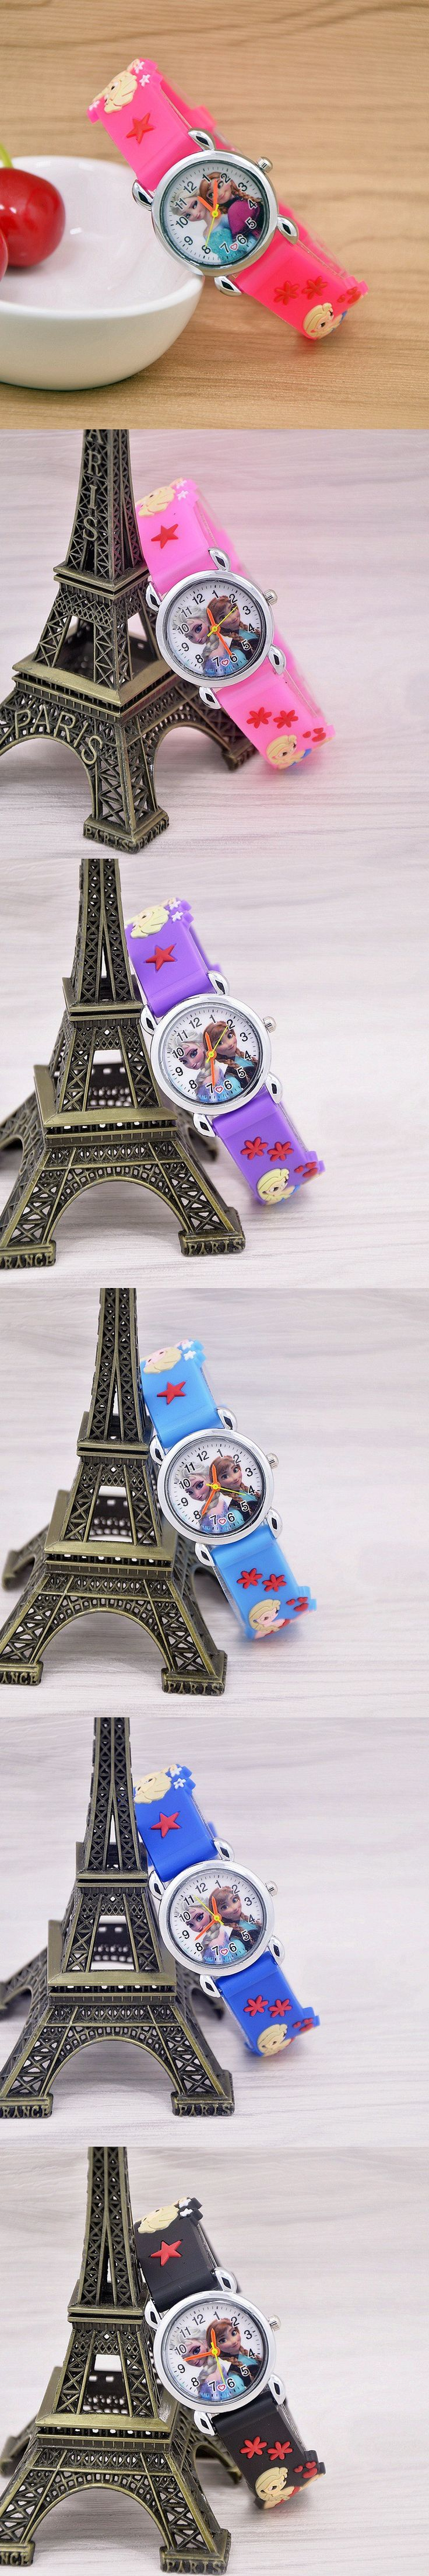 2016 New relojes Cartoon Children Watch Princess Elsa Anna Watches Fashion Kids Cute relogio quartz WristWatch Girl Gift $1.89